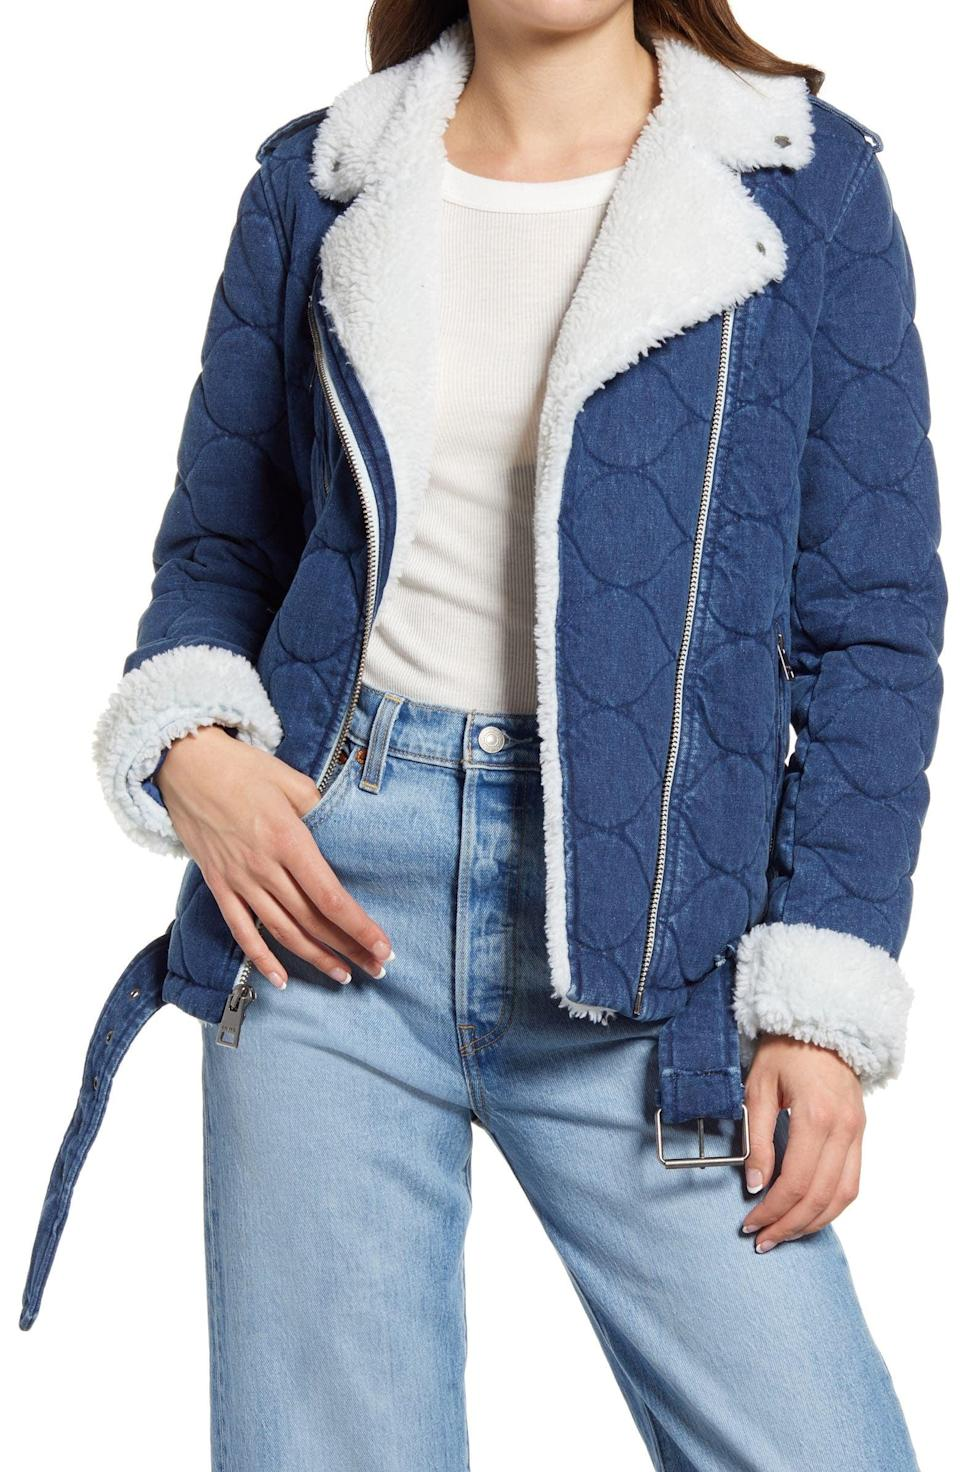 <p>With its sherpa lining and cool denim silhouette, this <span>Levi's Denim Moto Jacket</span> ($200) has enduring appeal. She can style it with blue jeans for a denim-on-denim look or with black leather pants to make it stand out.</p>